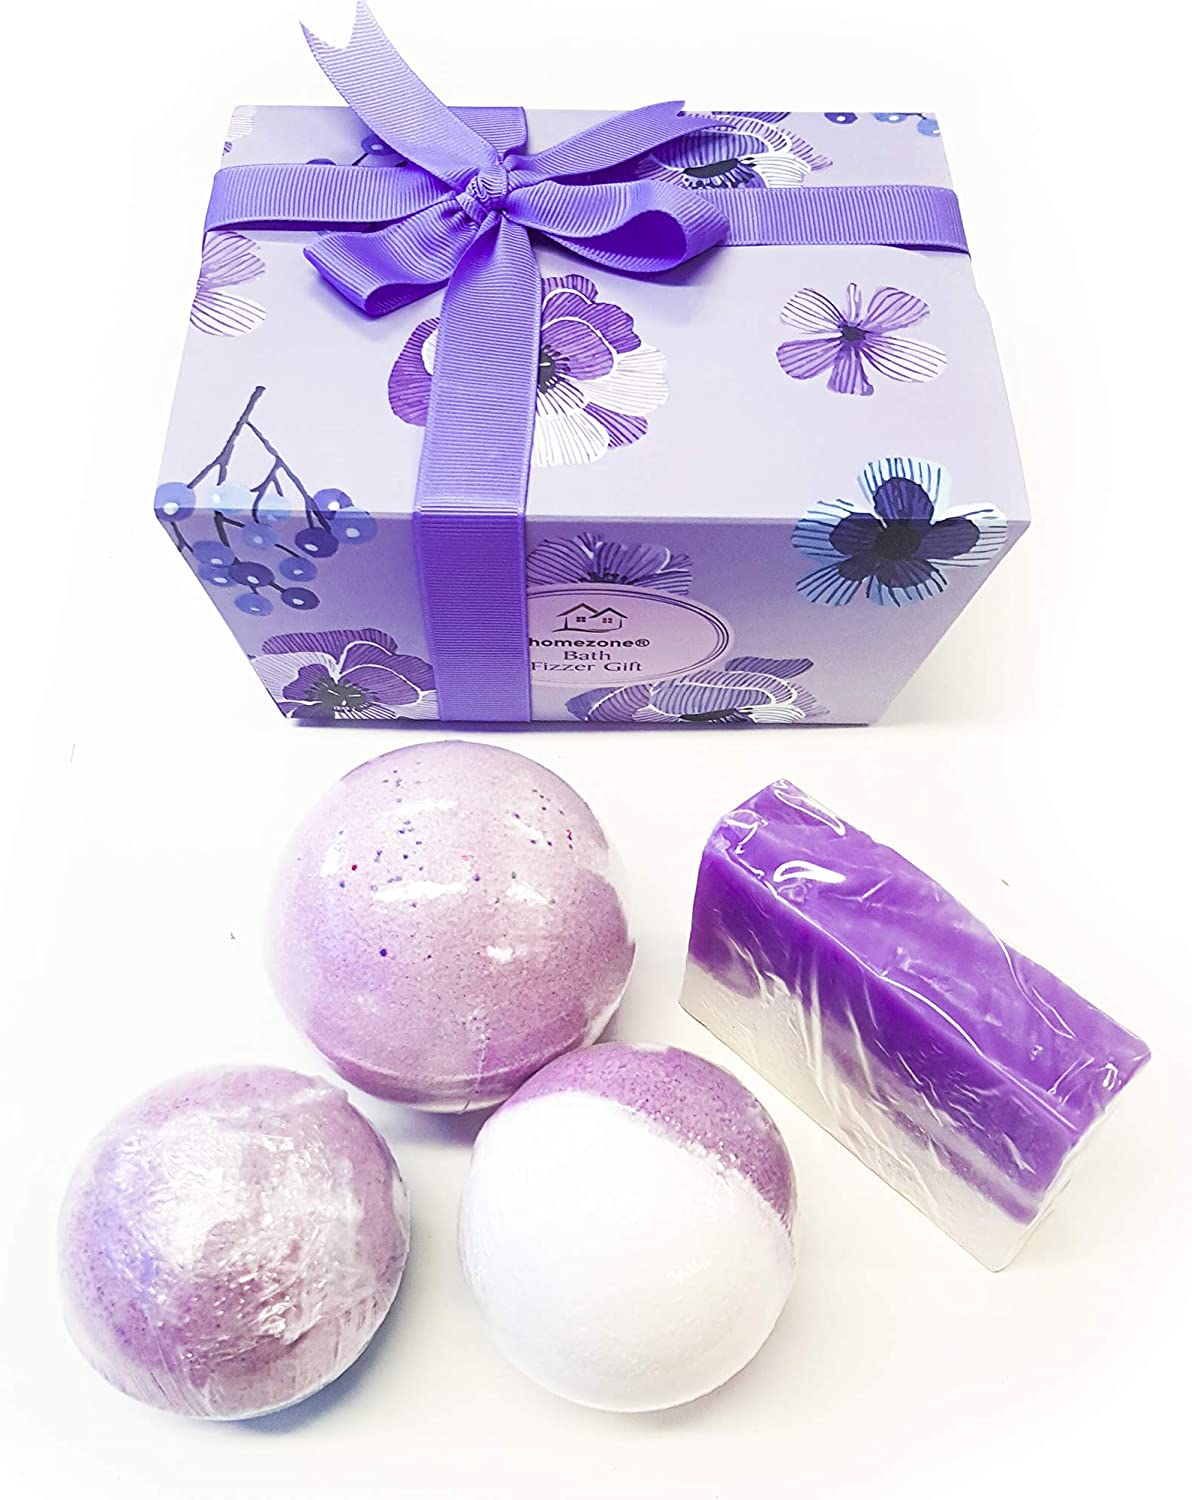 Homezone 4pc Luxury Bath Bomb And Shea Butter Soap Gifts For Women Gift Ideas Gift Luxury Christmas Organic Essential Oils Beauty Gift Set Ladies Womens Bath Bombs Amazon Co Uk Beauty